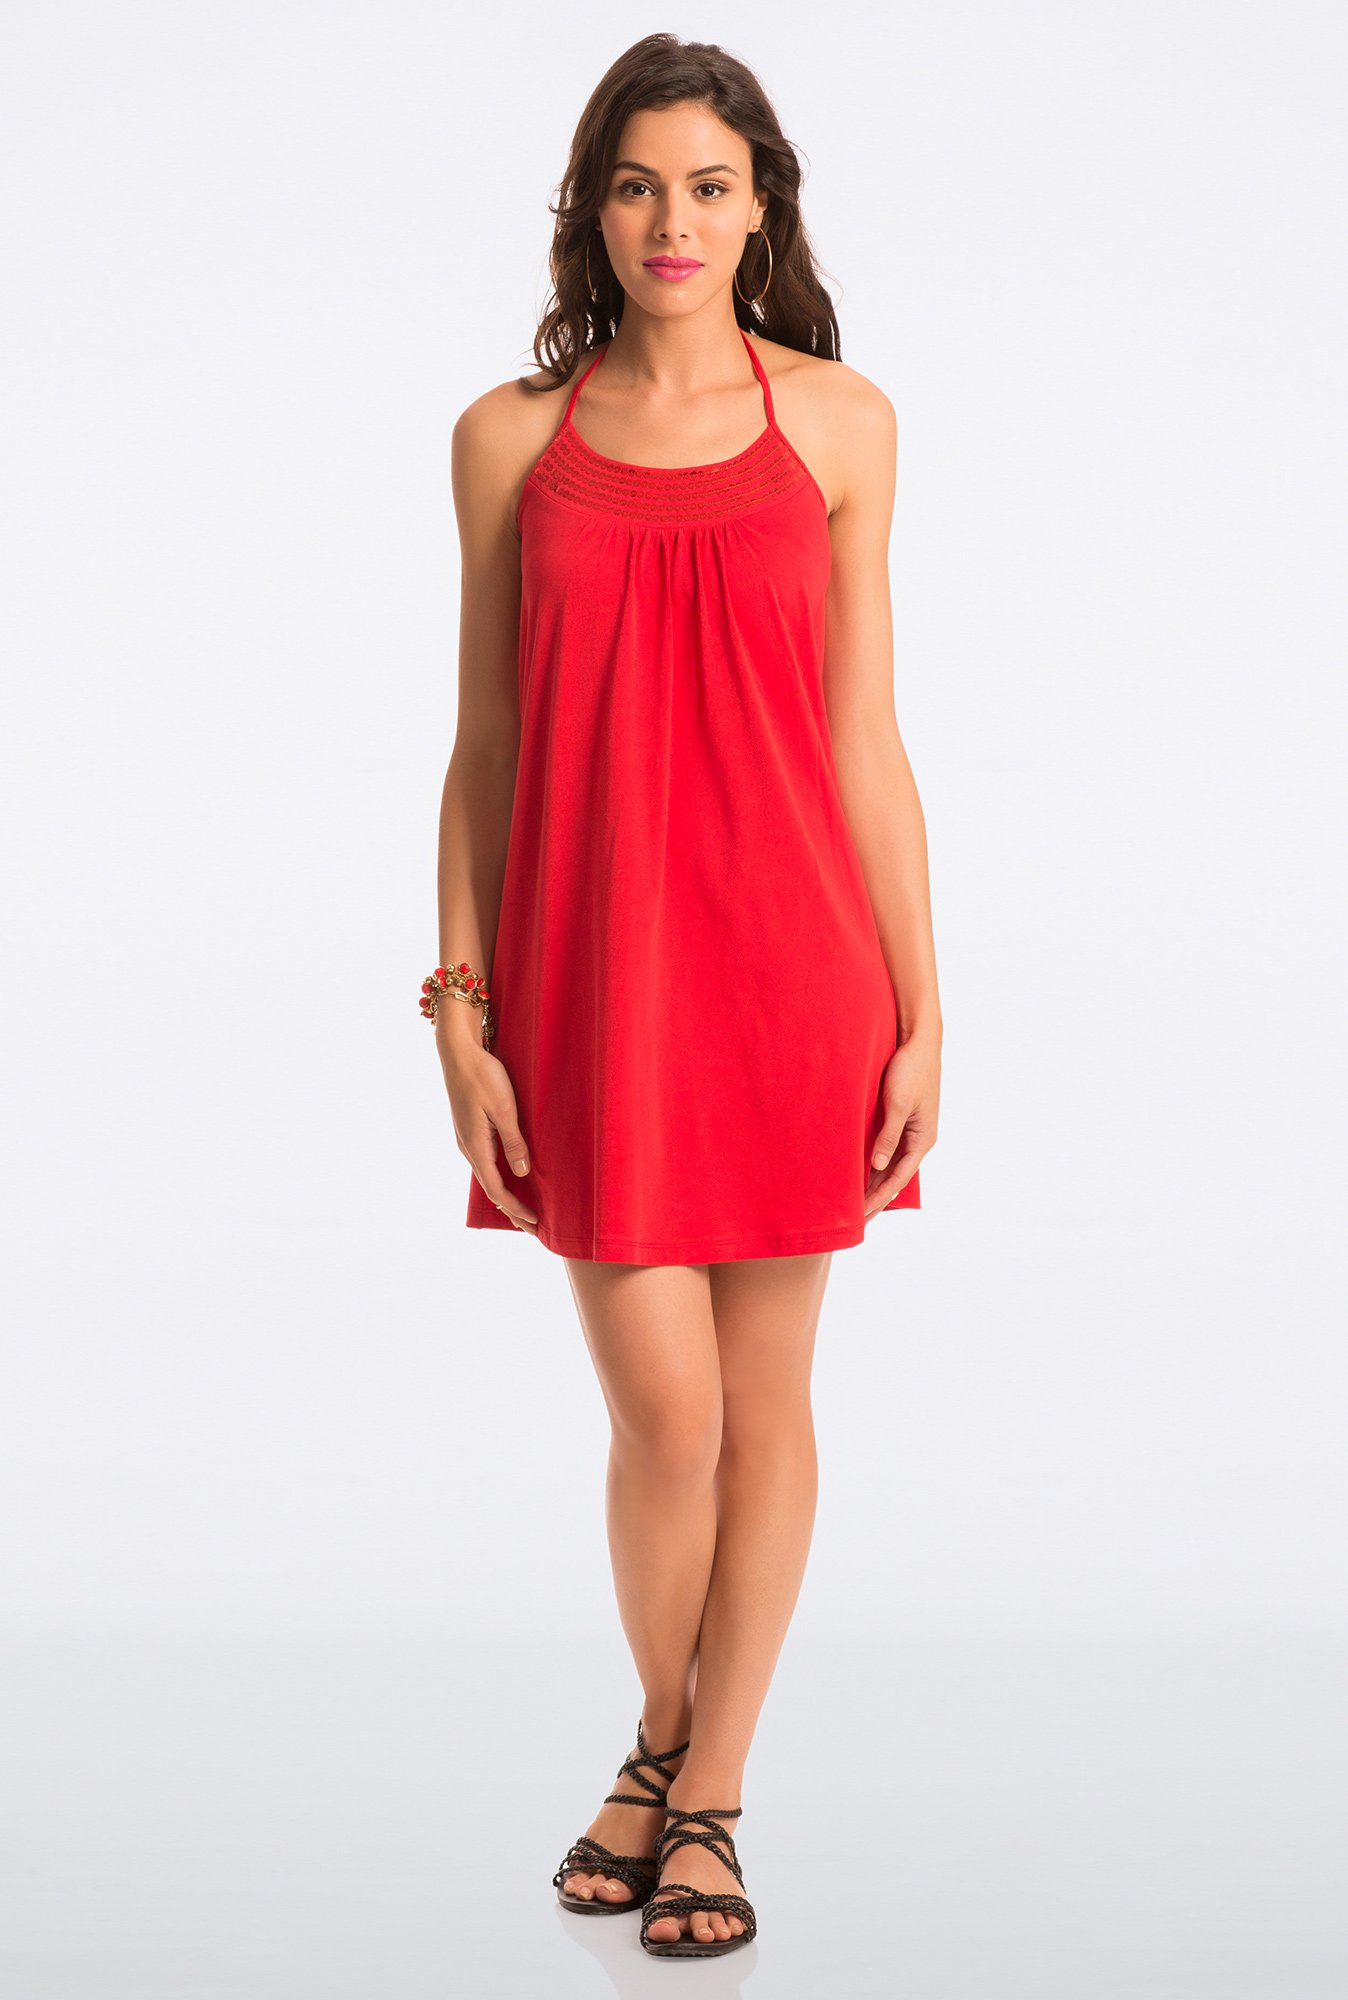 PrettySecrets Red Solid Halter Dress